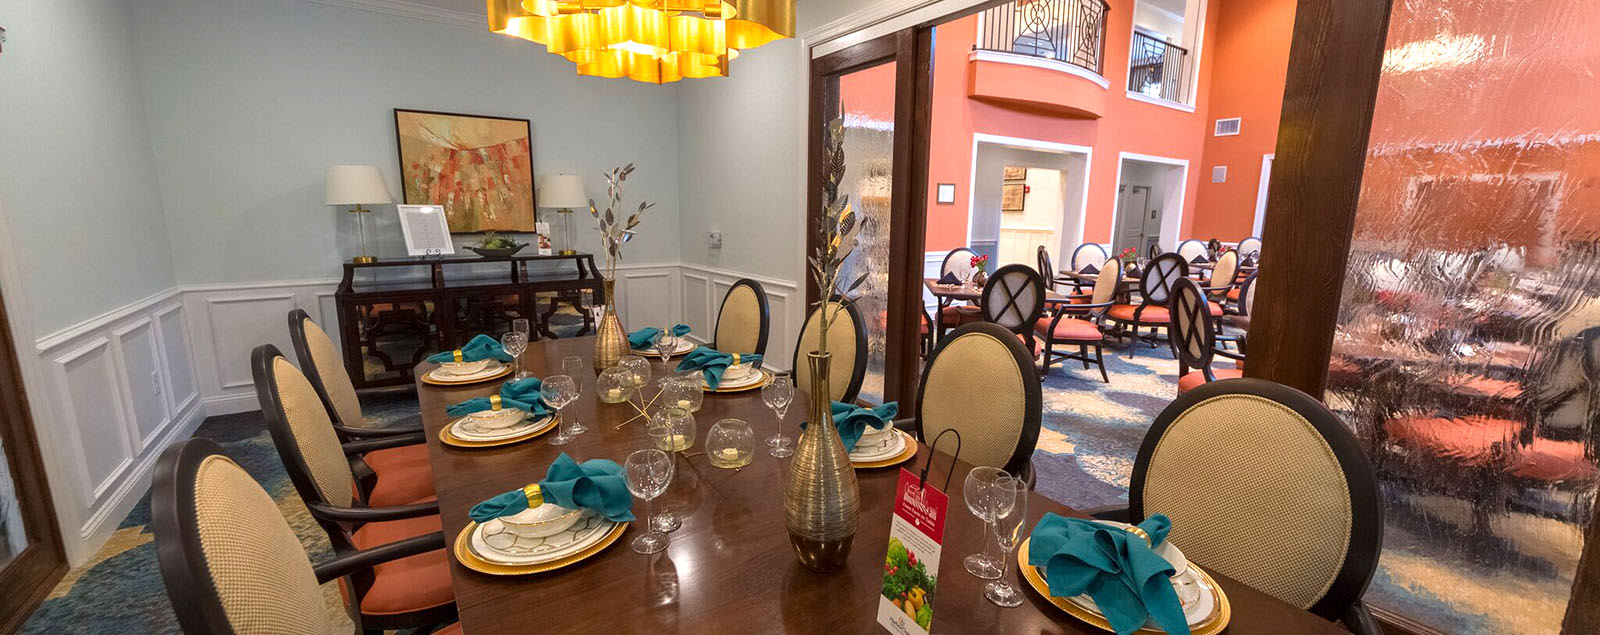 Schedule a senior living our in Jacksonville